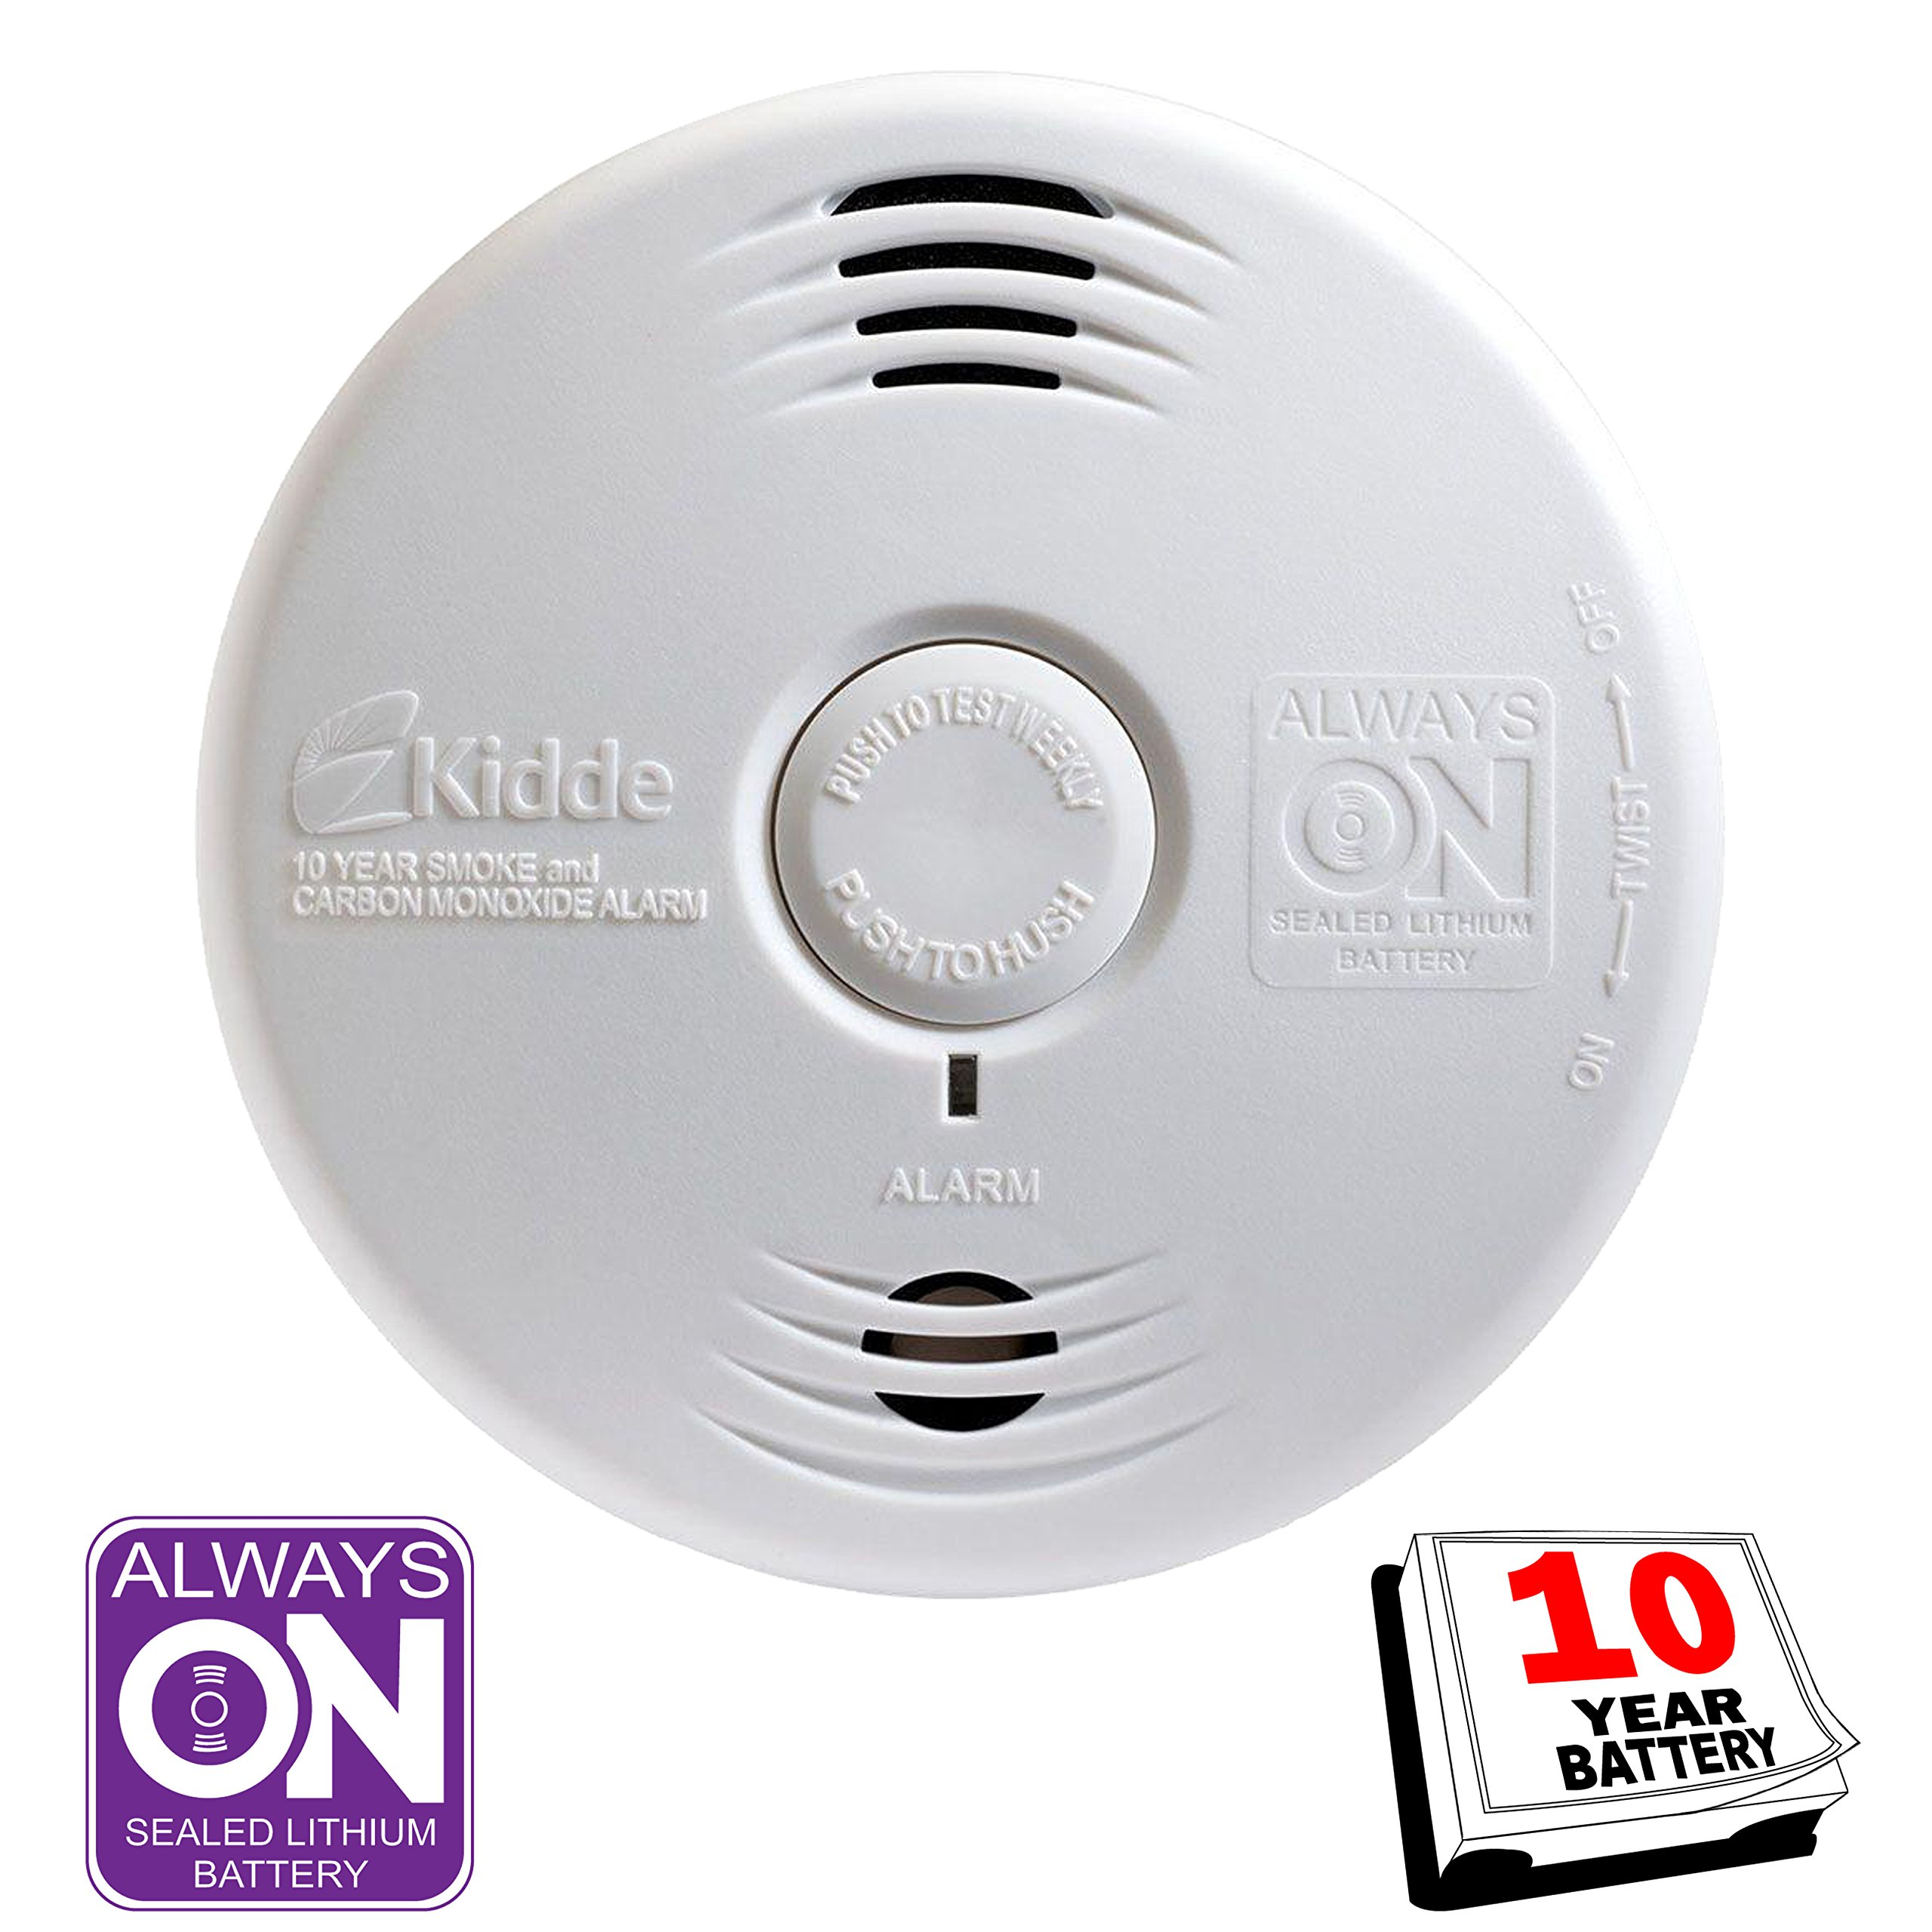 Smoke Detector Firex 120 1072b Wiring Diagram Trusted And Carbon Monoxide Alarm Amazon Com 1182b